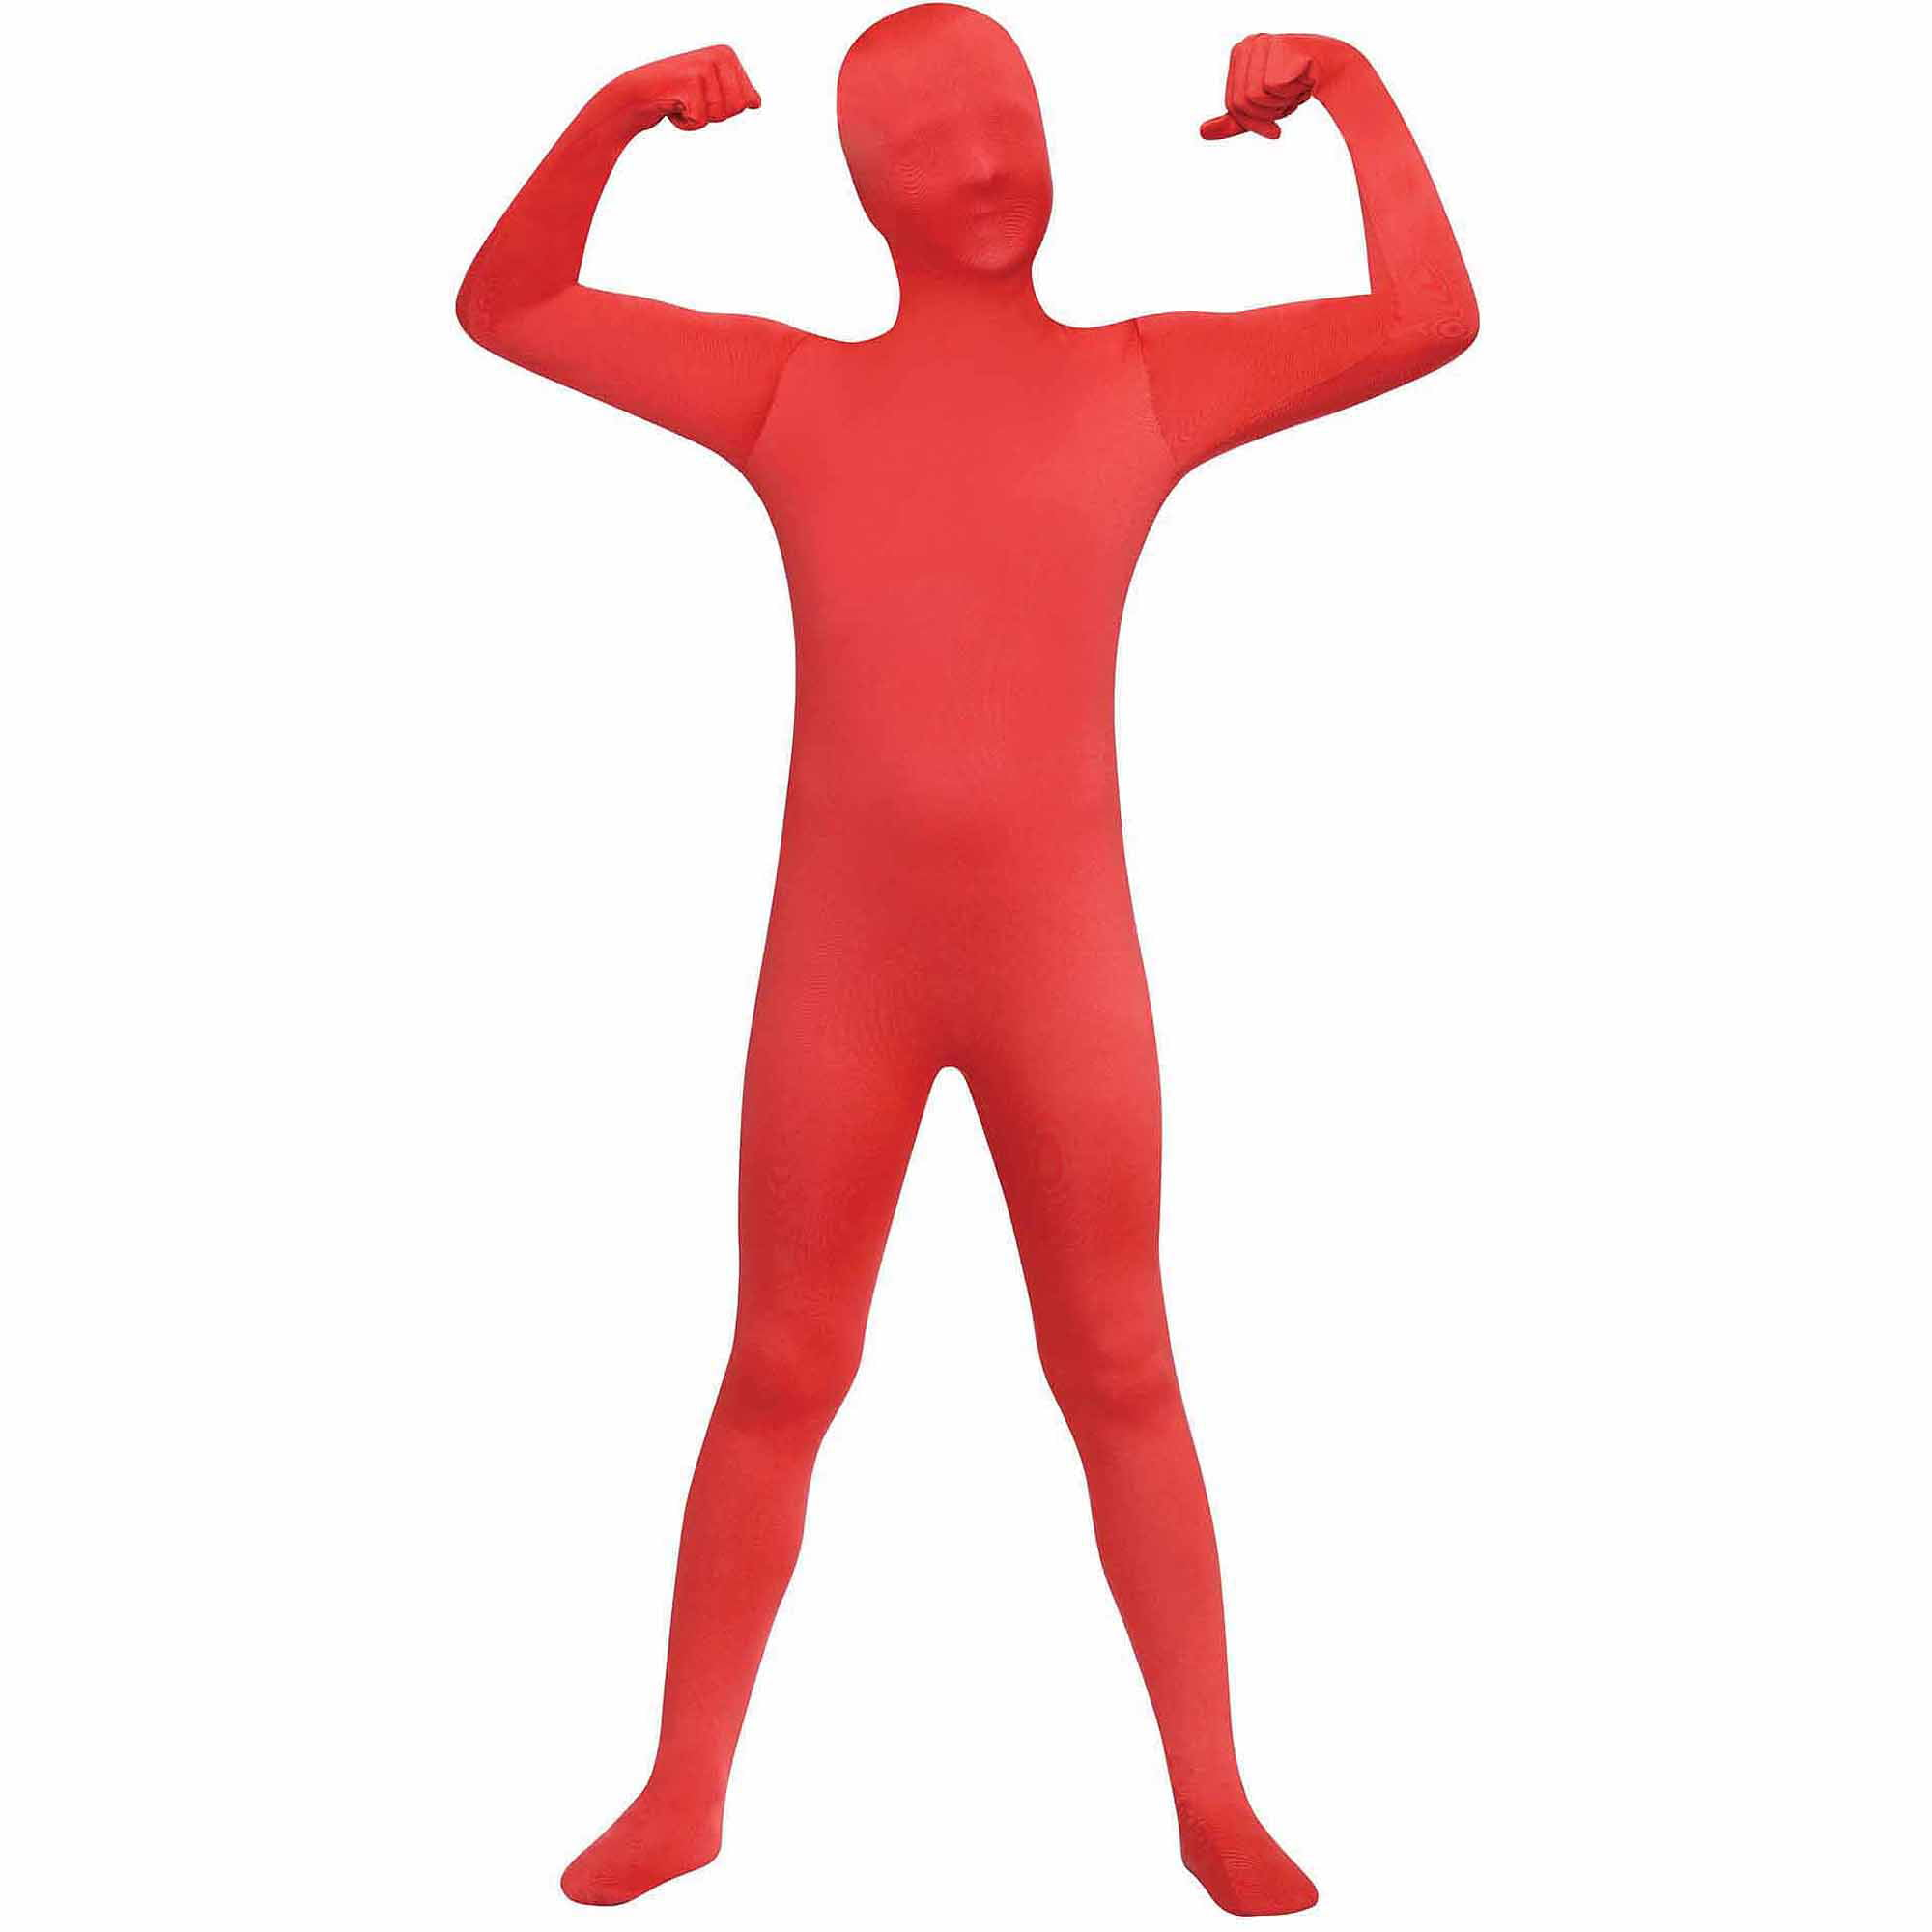 Red Skin Suit Child Halloween Costume - Walmart.com